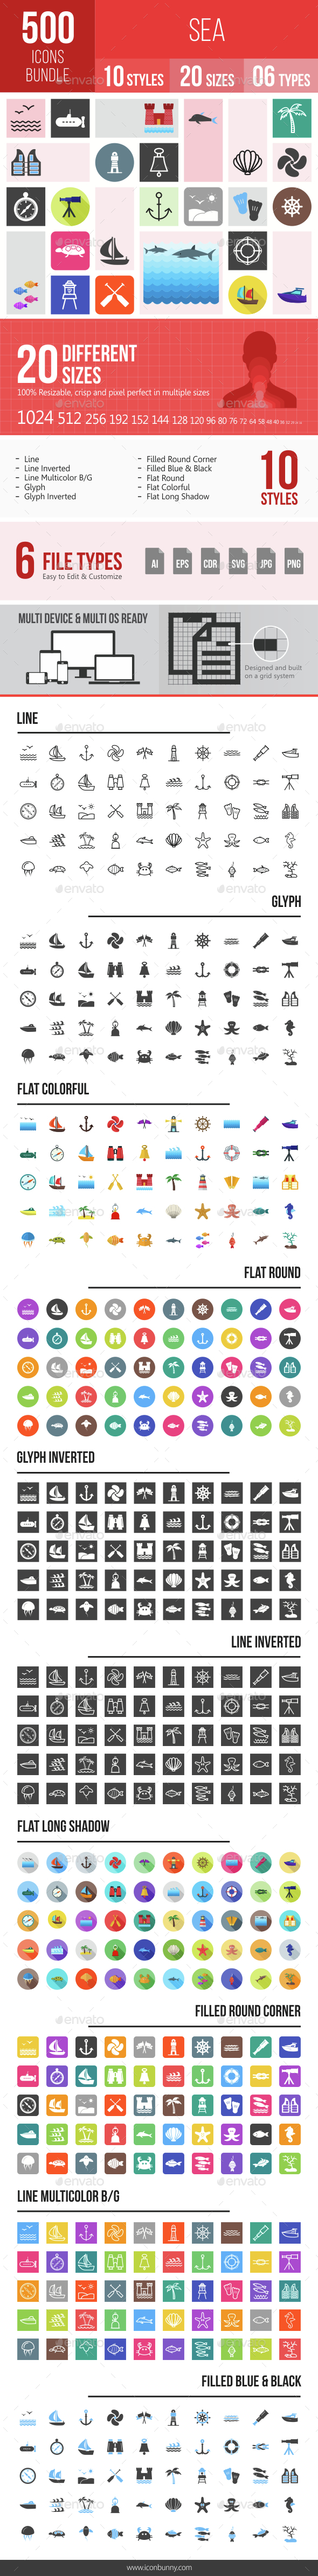 500 Sea Icons Bundle - Icons